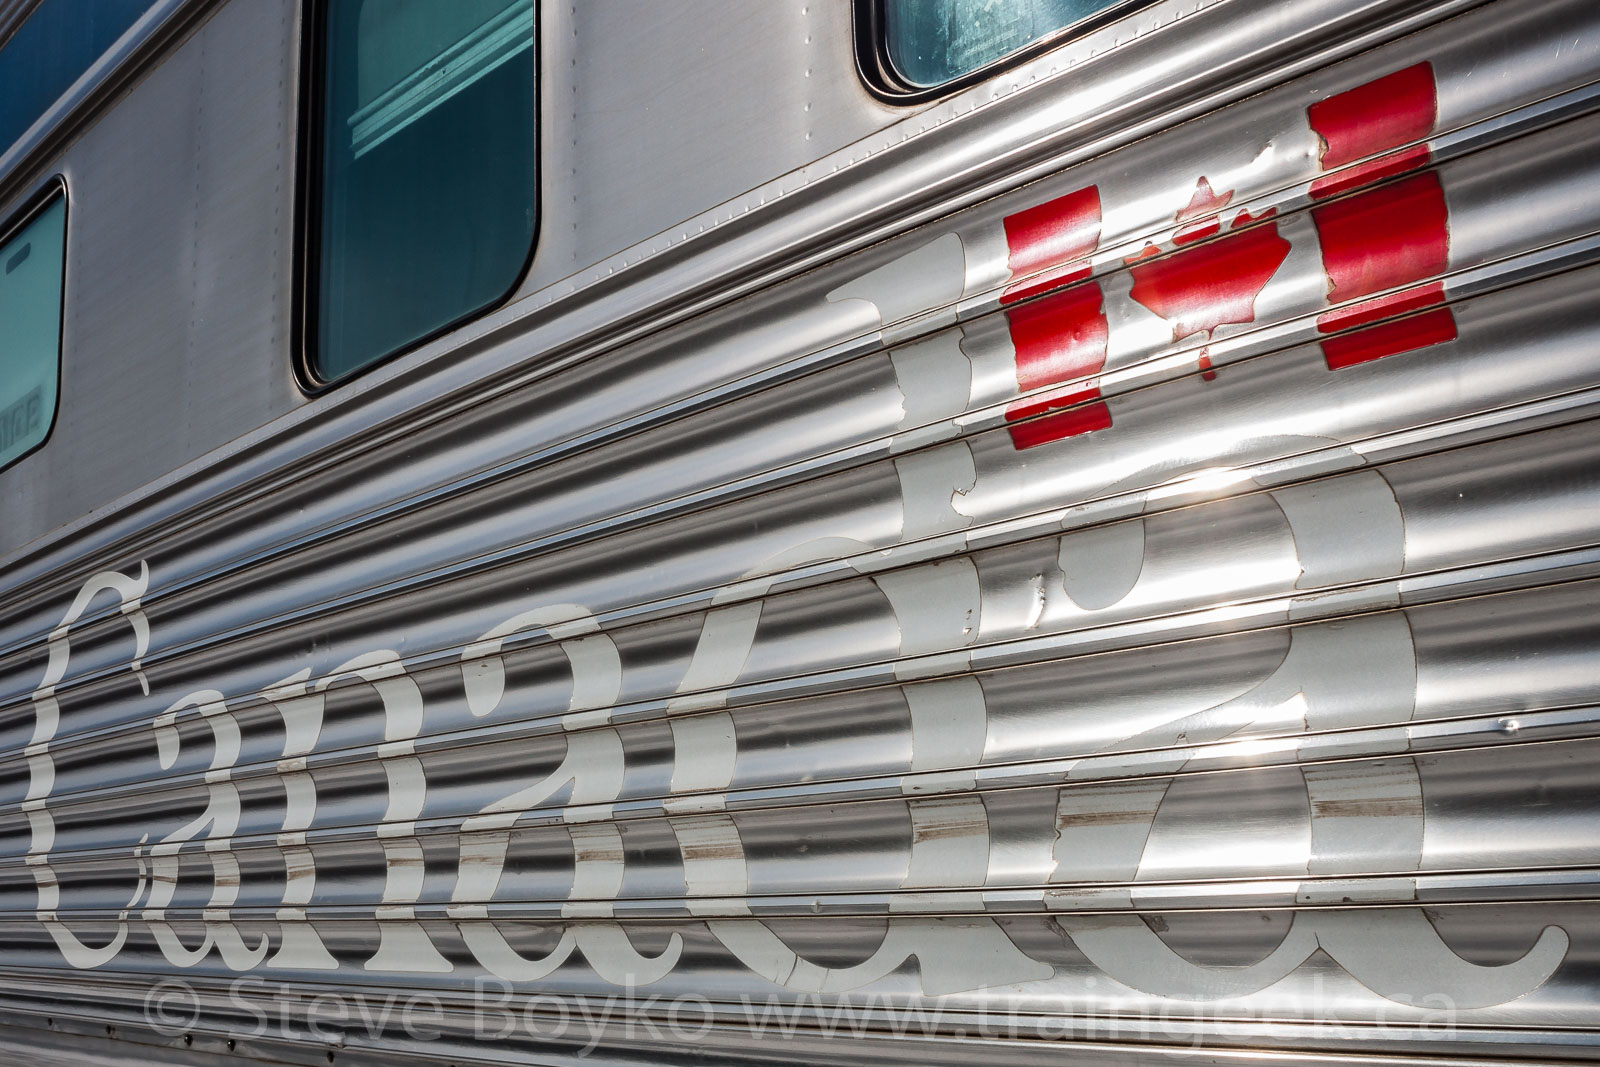 Canada and the Flag on a railway car